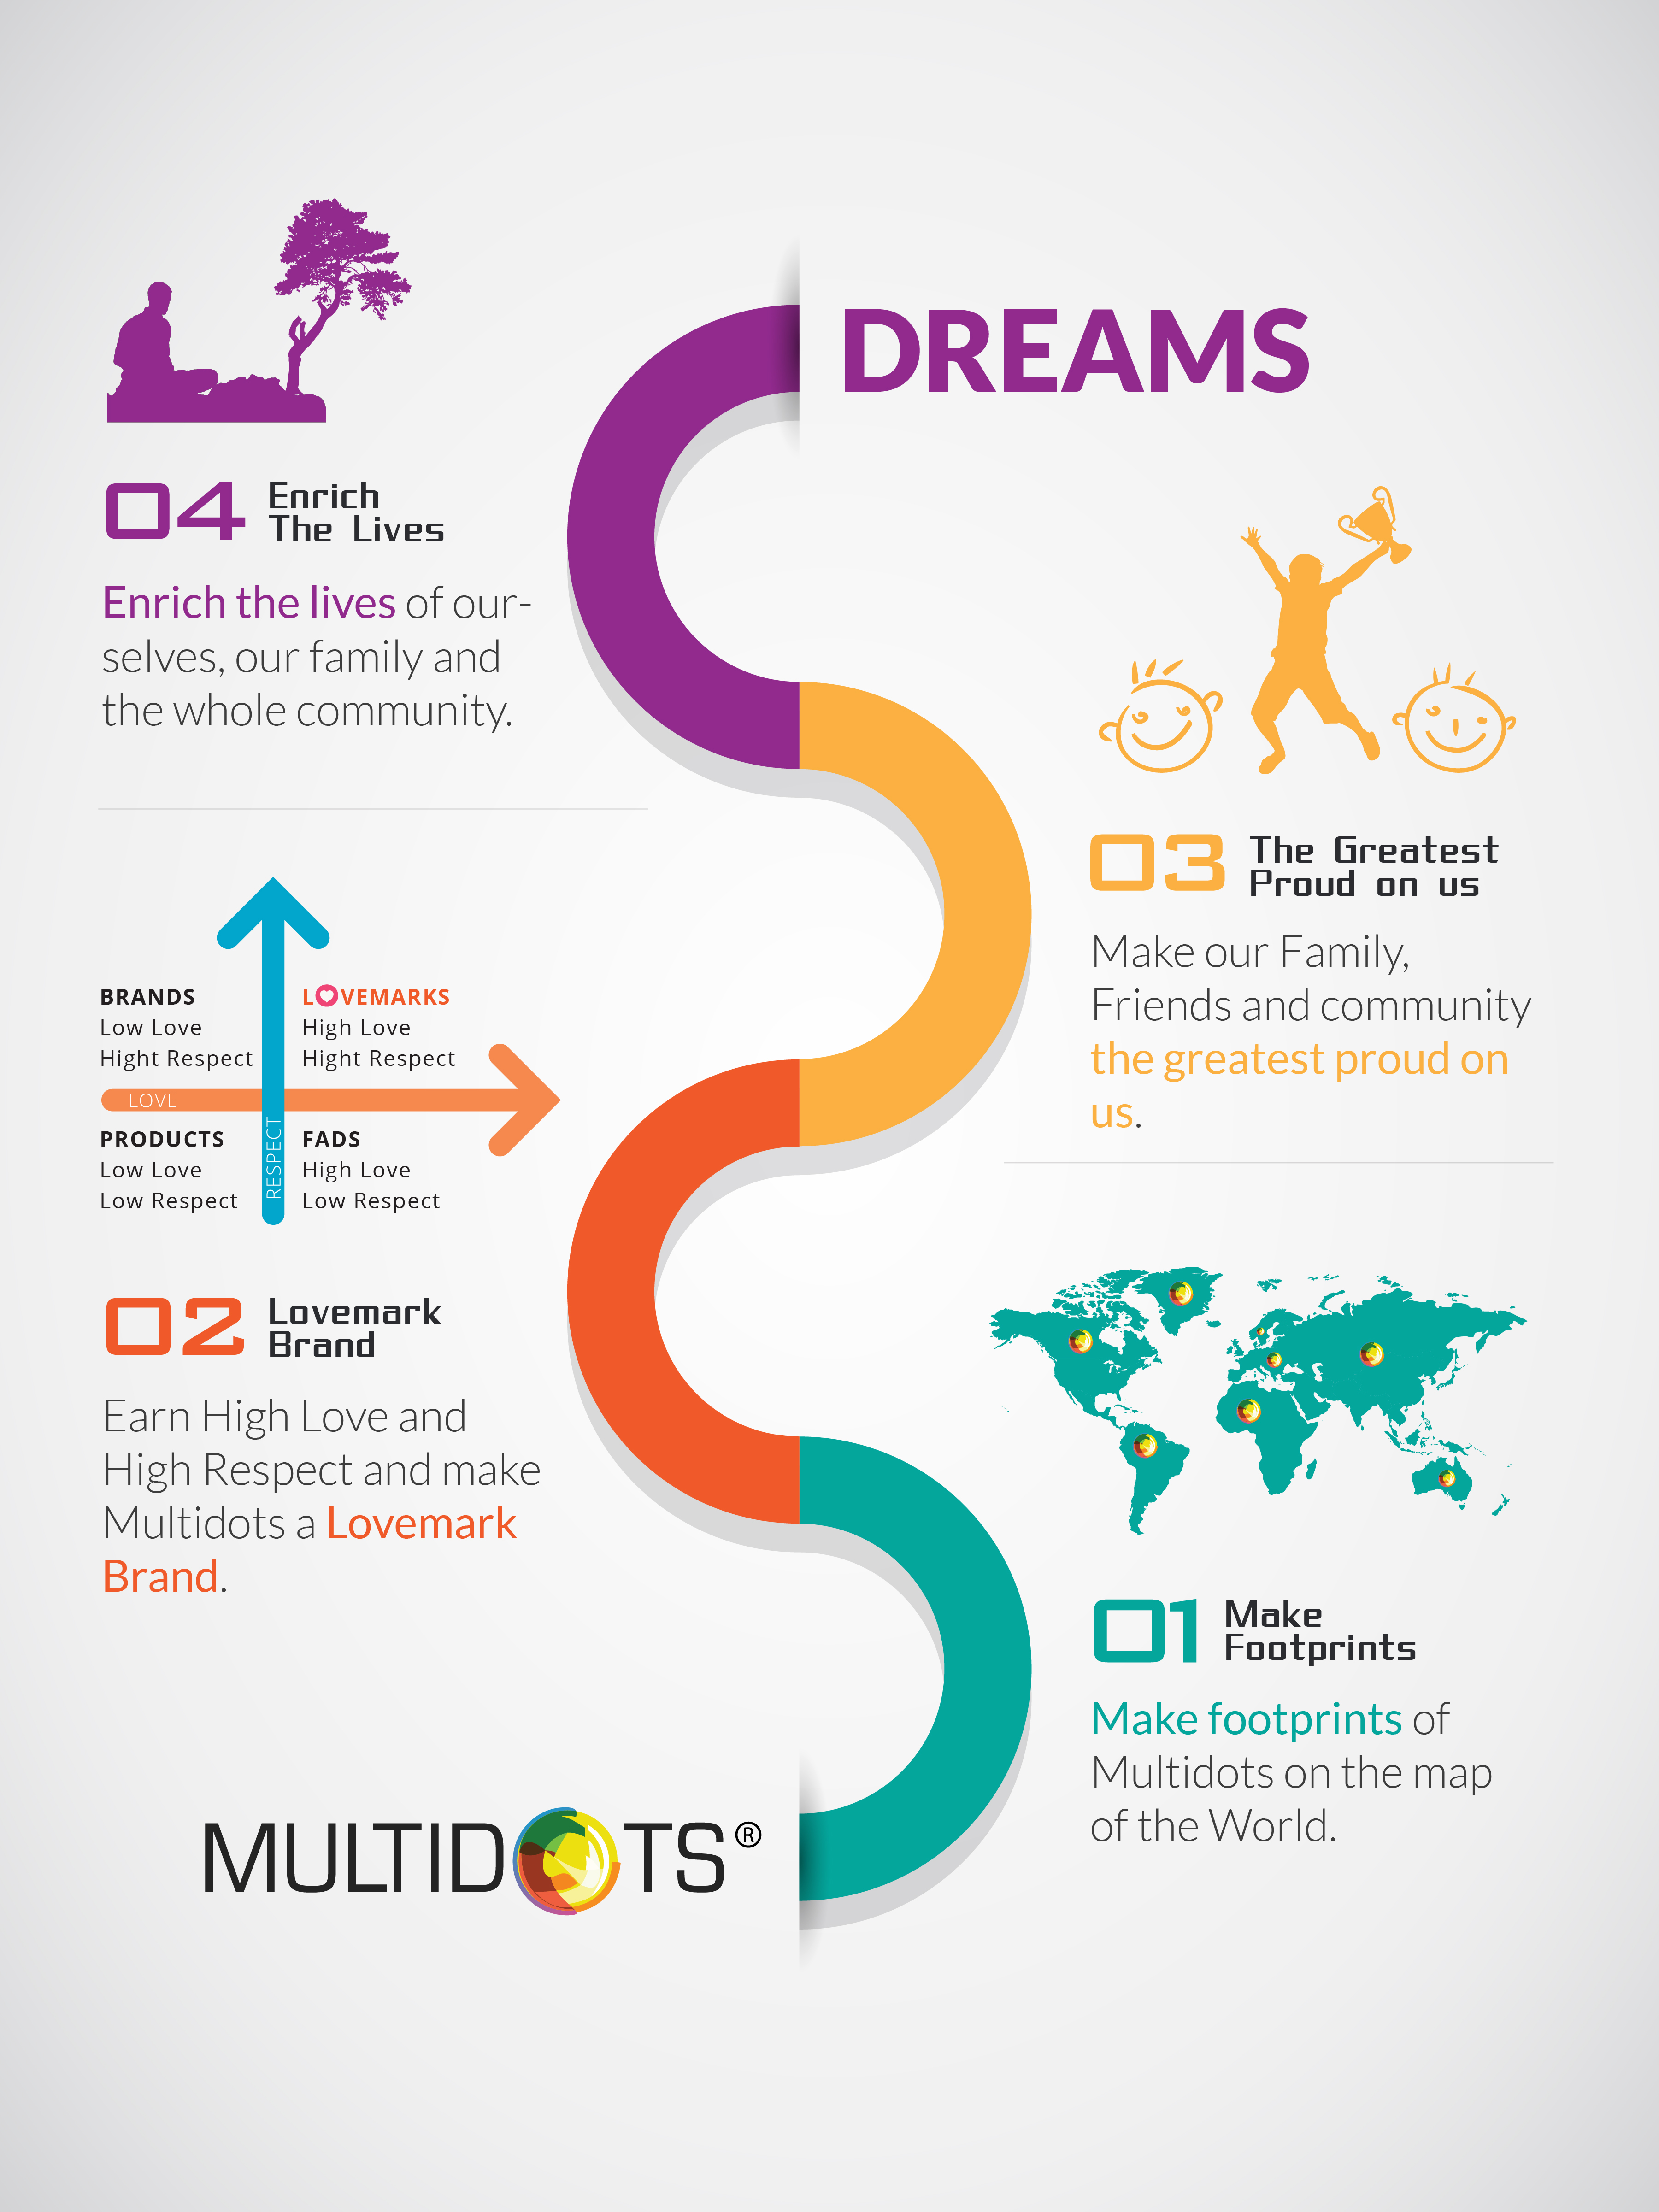 Multidots Dreams